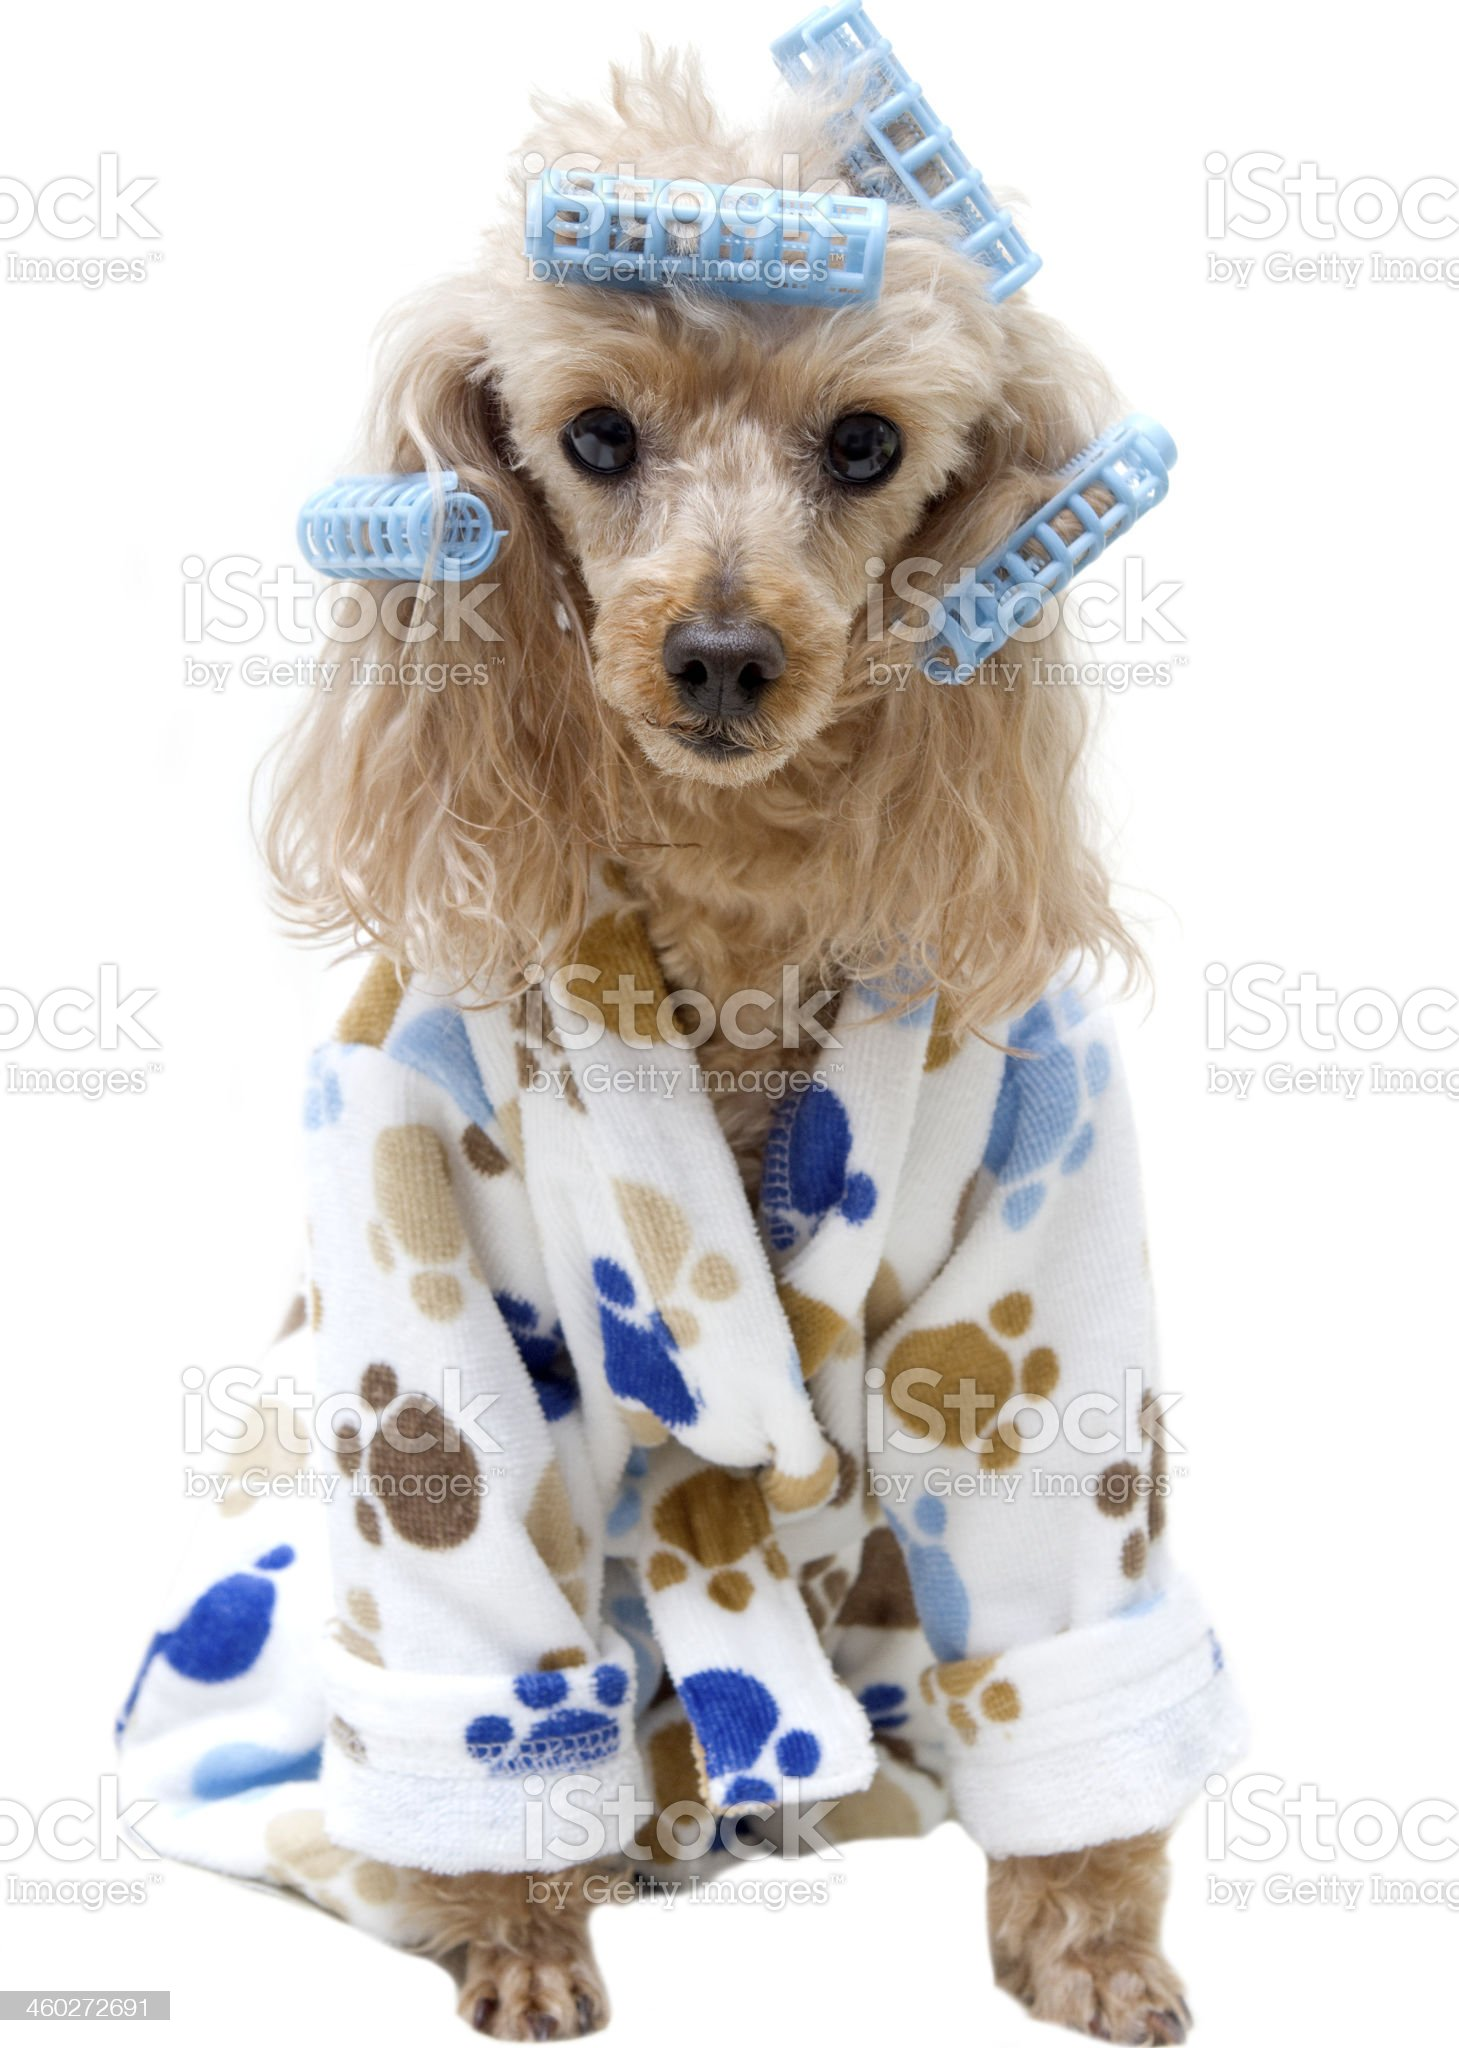 Paw Print Bathrobe and Blue Curlers royalty-free stock photo